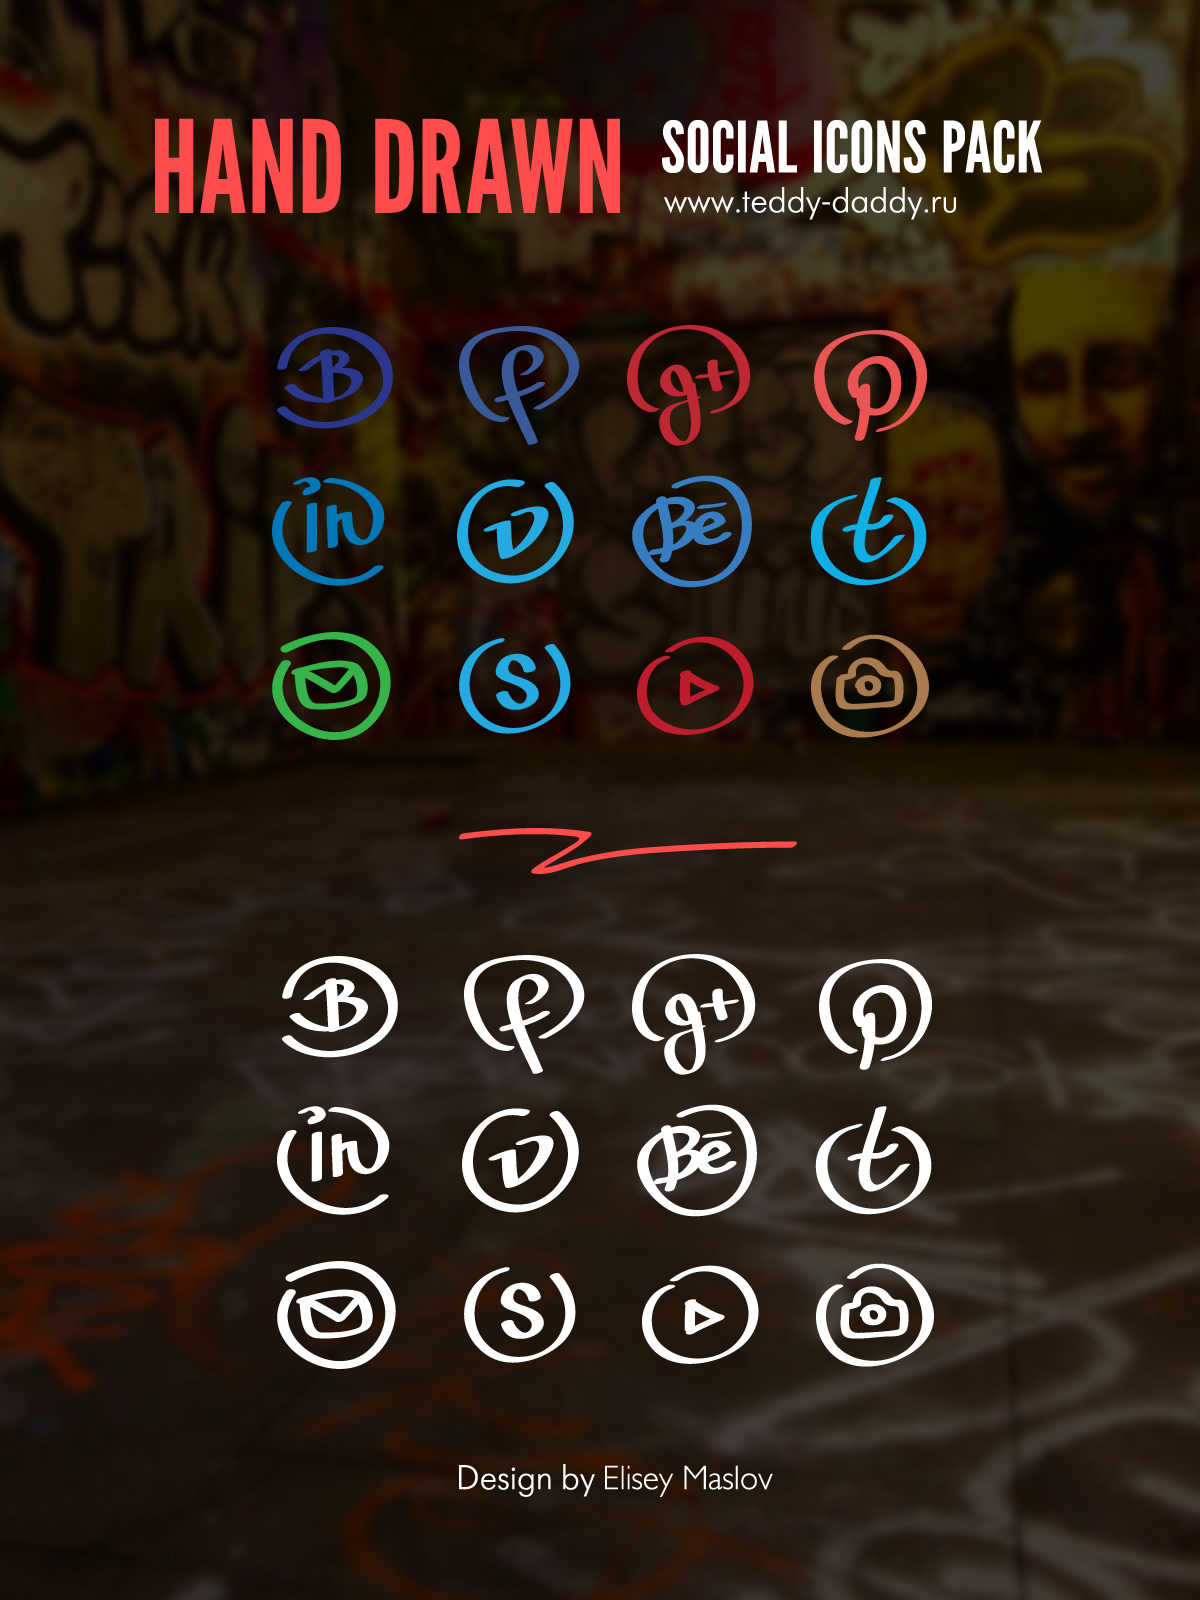 Hand-drawn-social-icons-pack